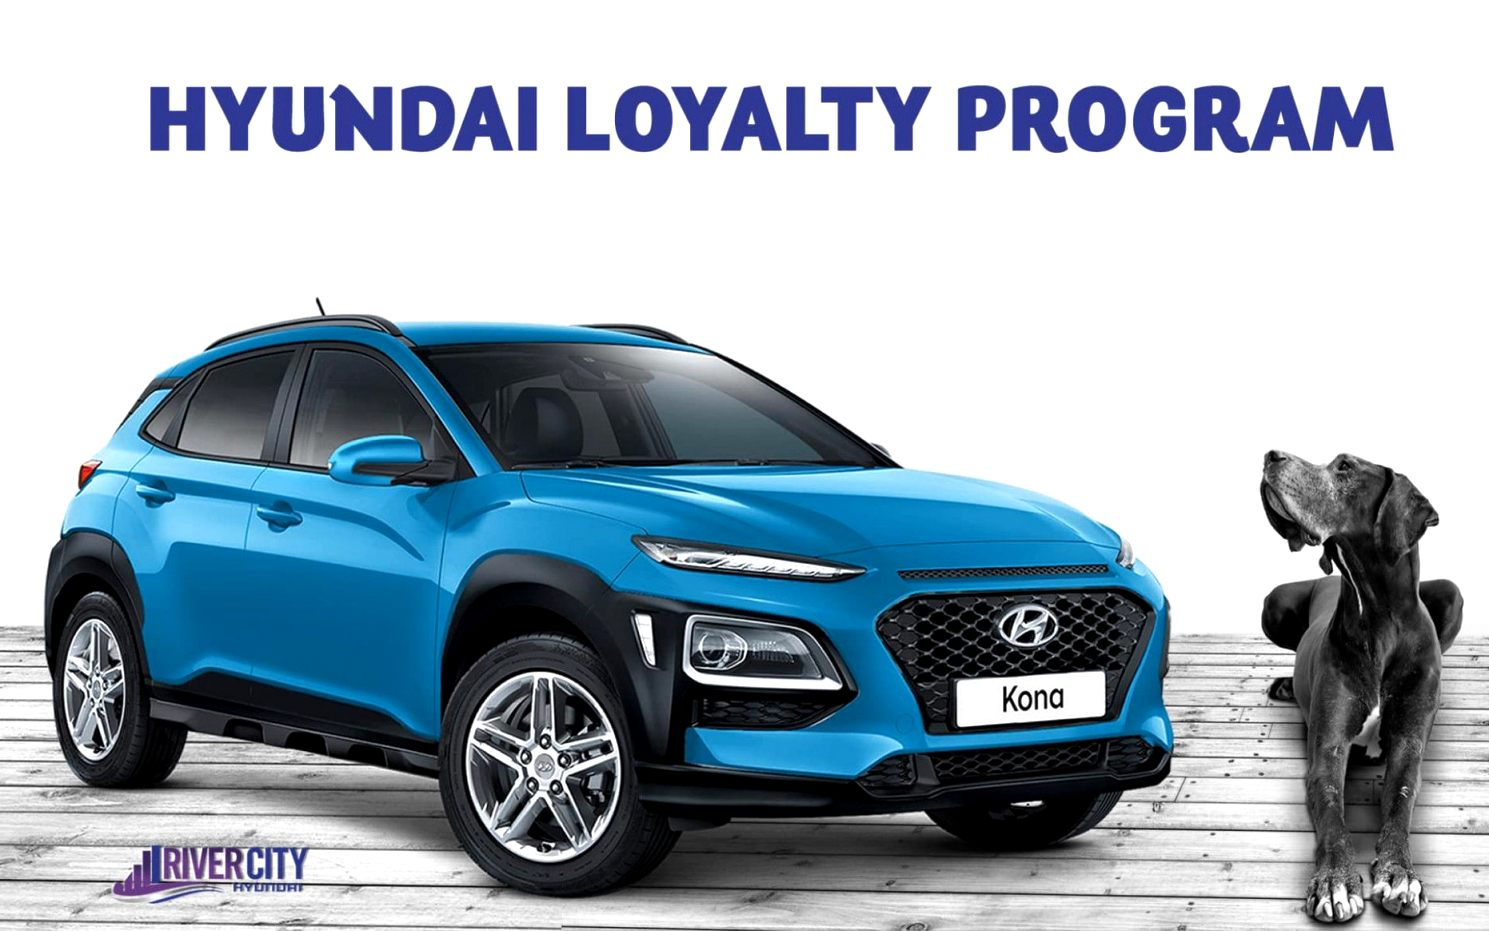 hyundai loyalty program 2020 Performance and New Engine